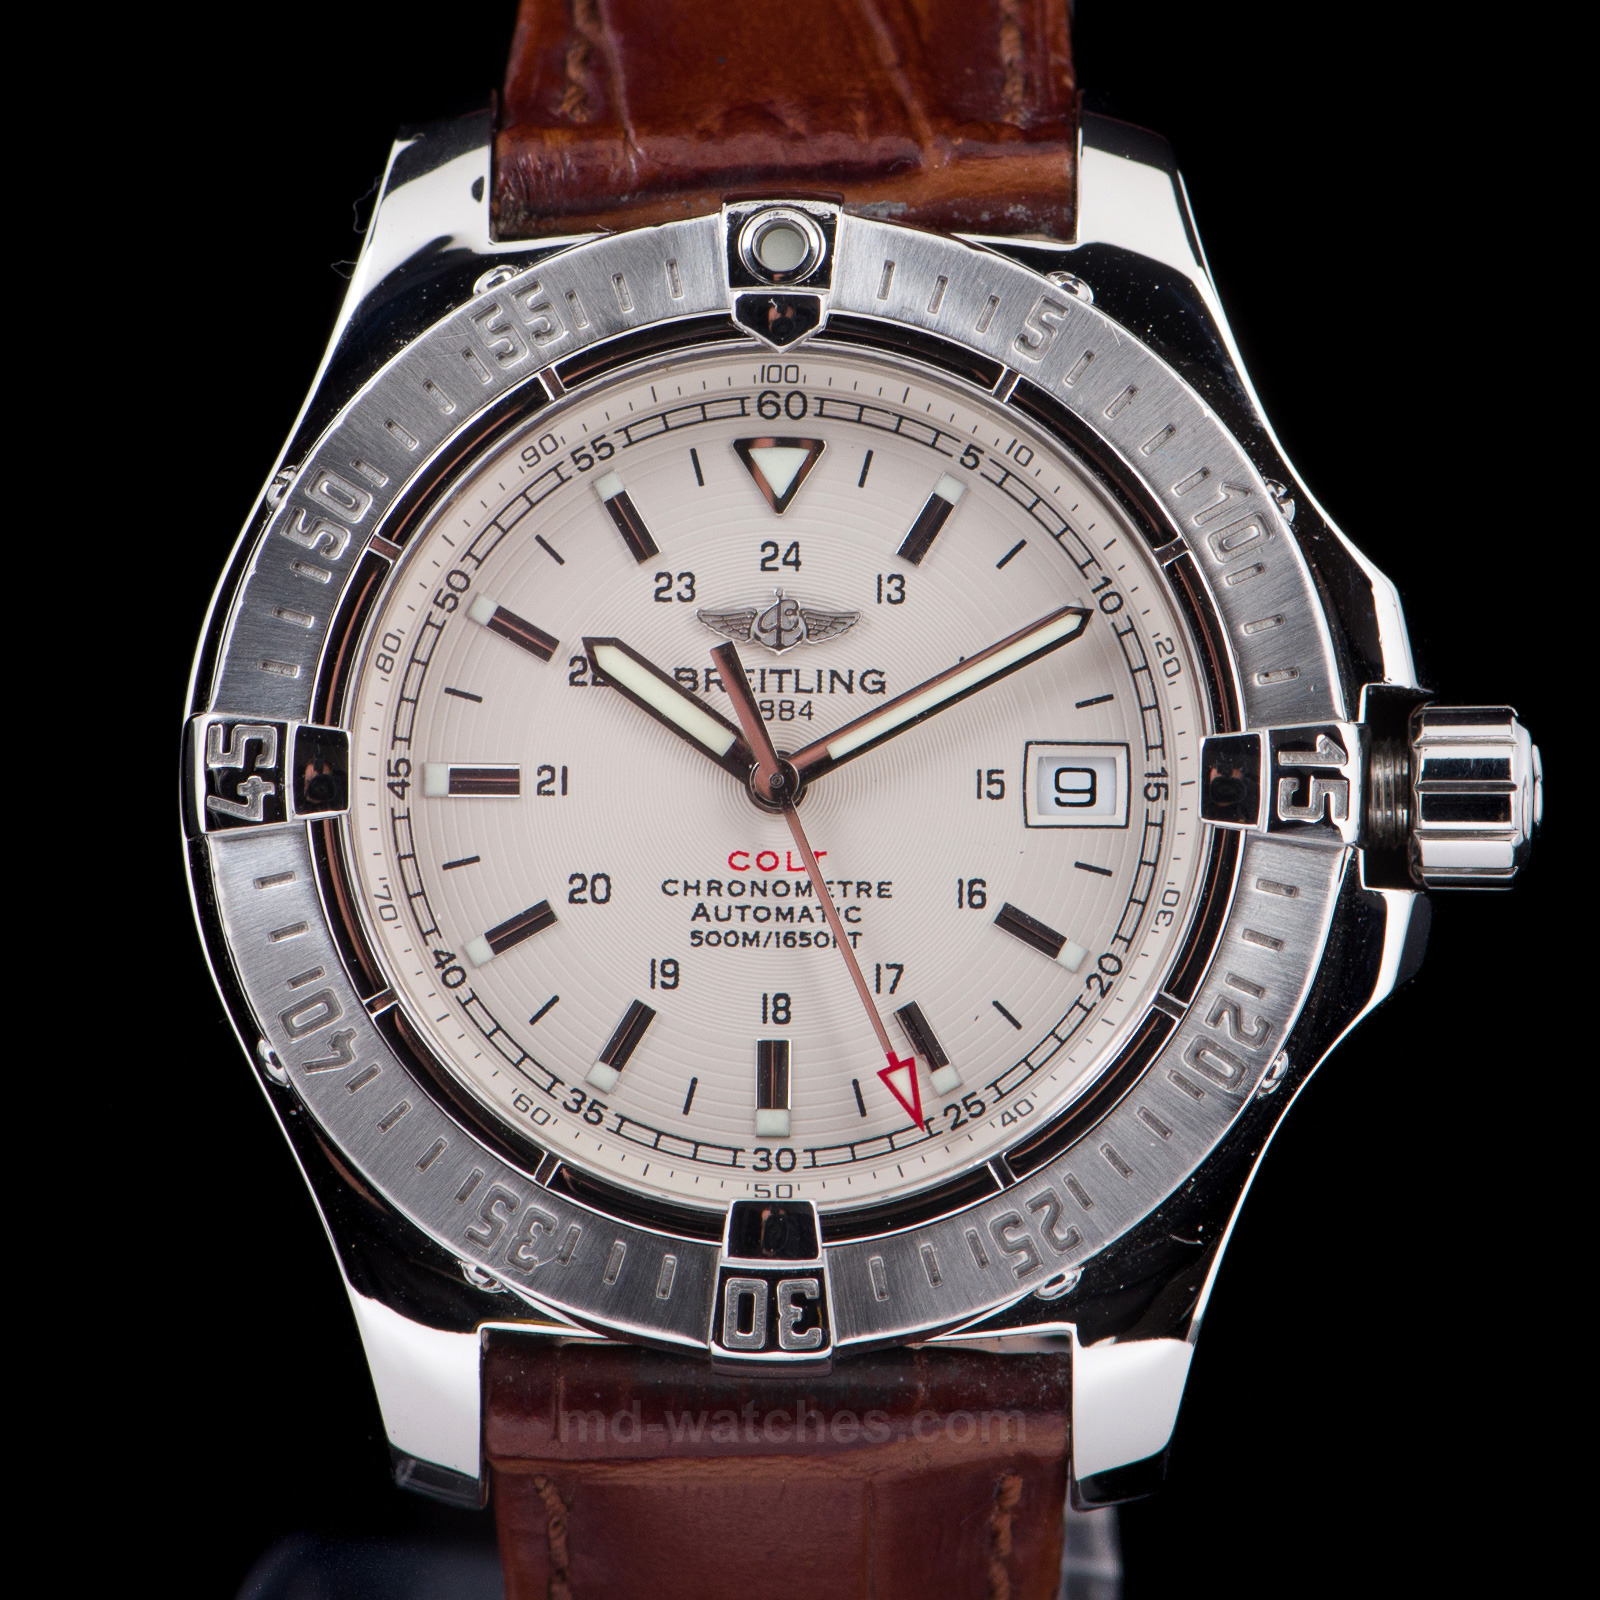 Ashford provides a very wide variety of fashionable jewelry and luxury watches. Ashford offer % authentic, brand-new, brand-name merchandise from some of the finest manufacturers on the planet, all at discount prices with coupon savings too.